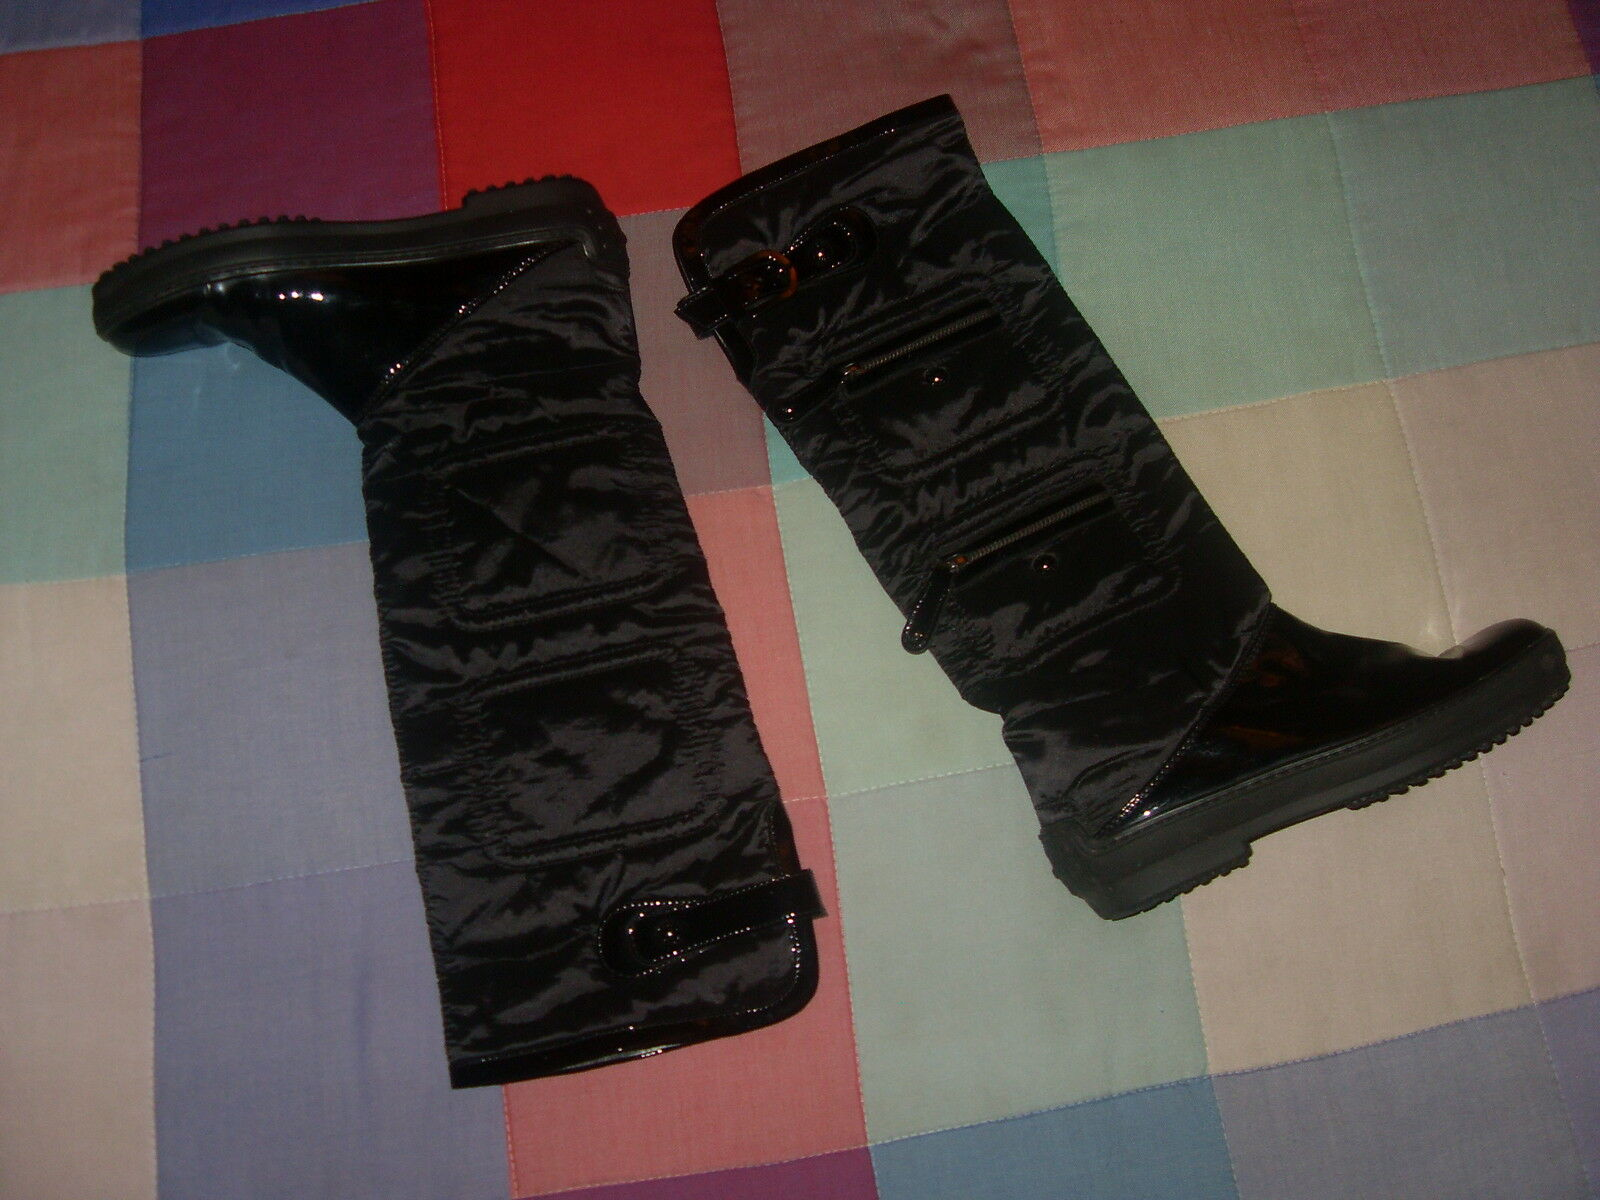 bottes Tods Tod 's largas  precio real Taille Taille Taille 36  medio medias 37 326c9f